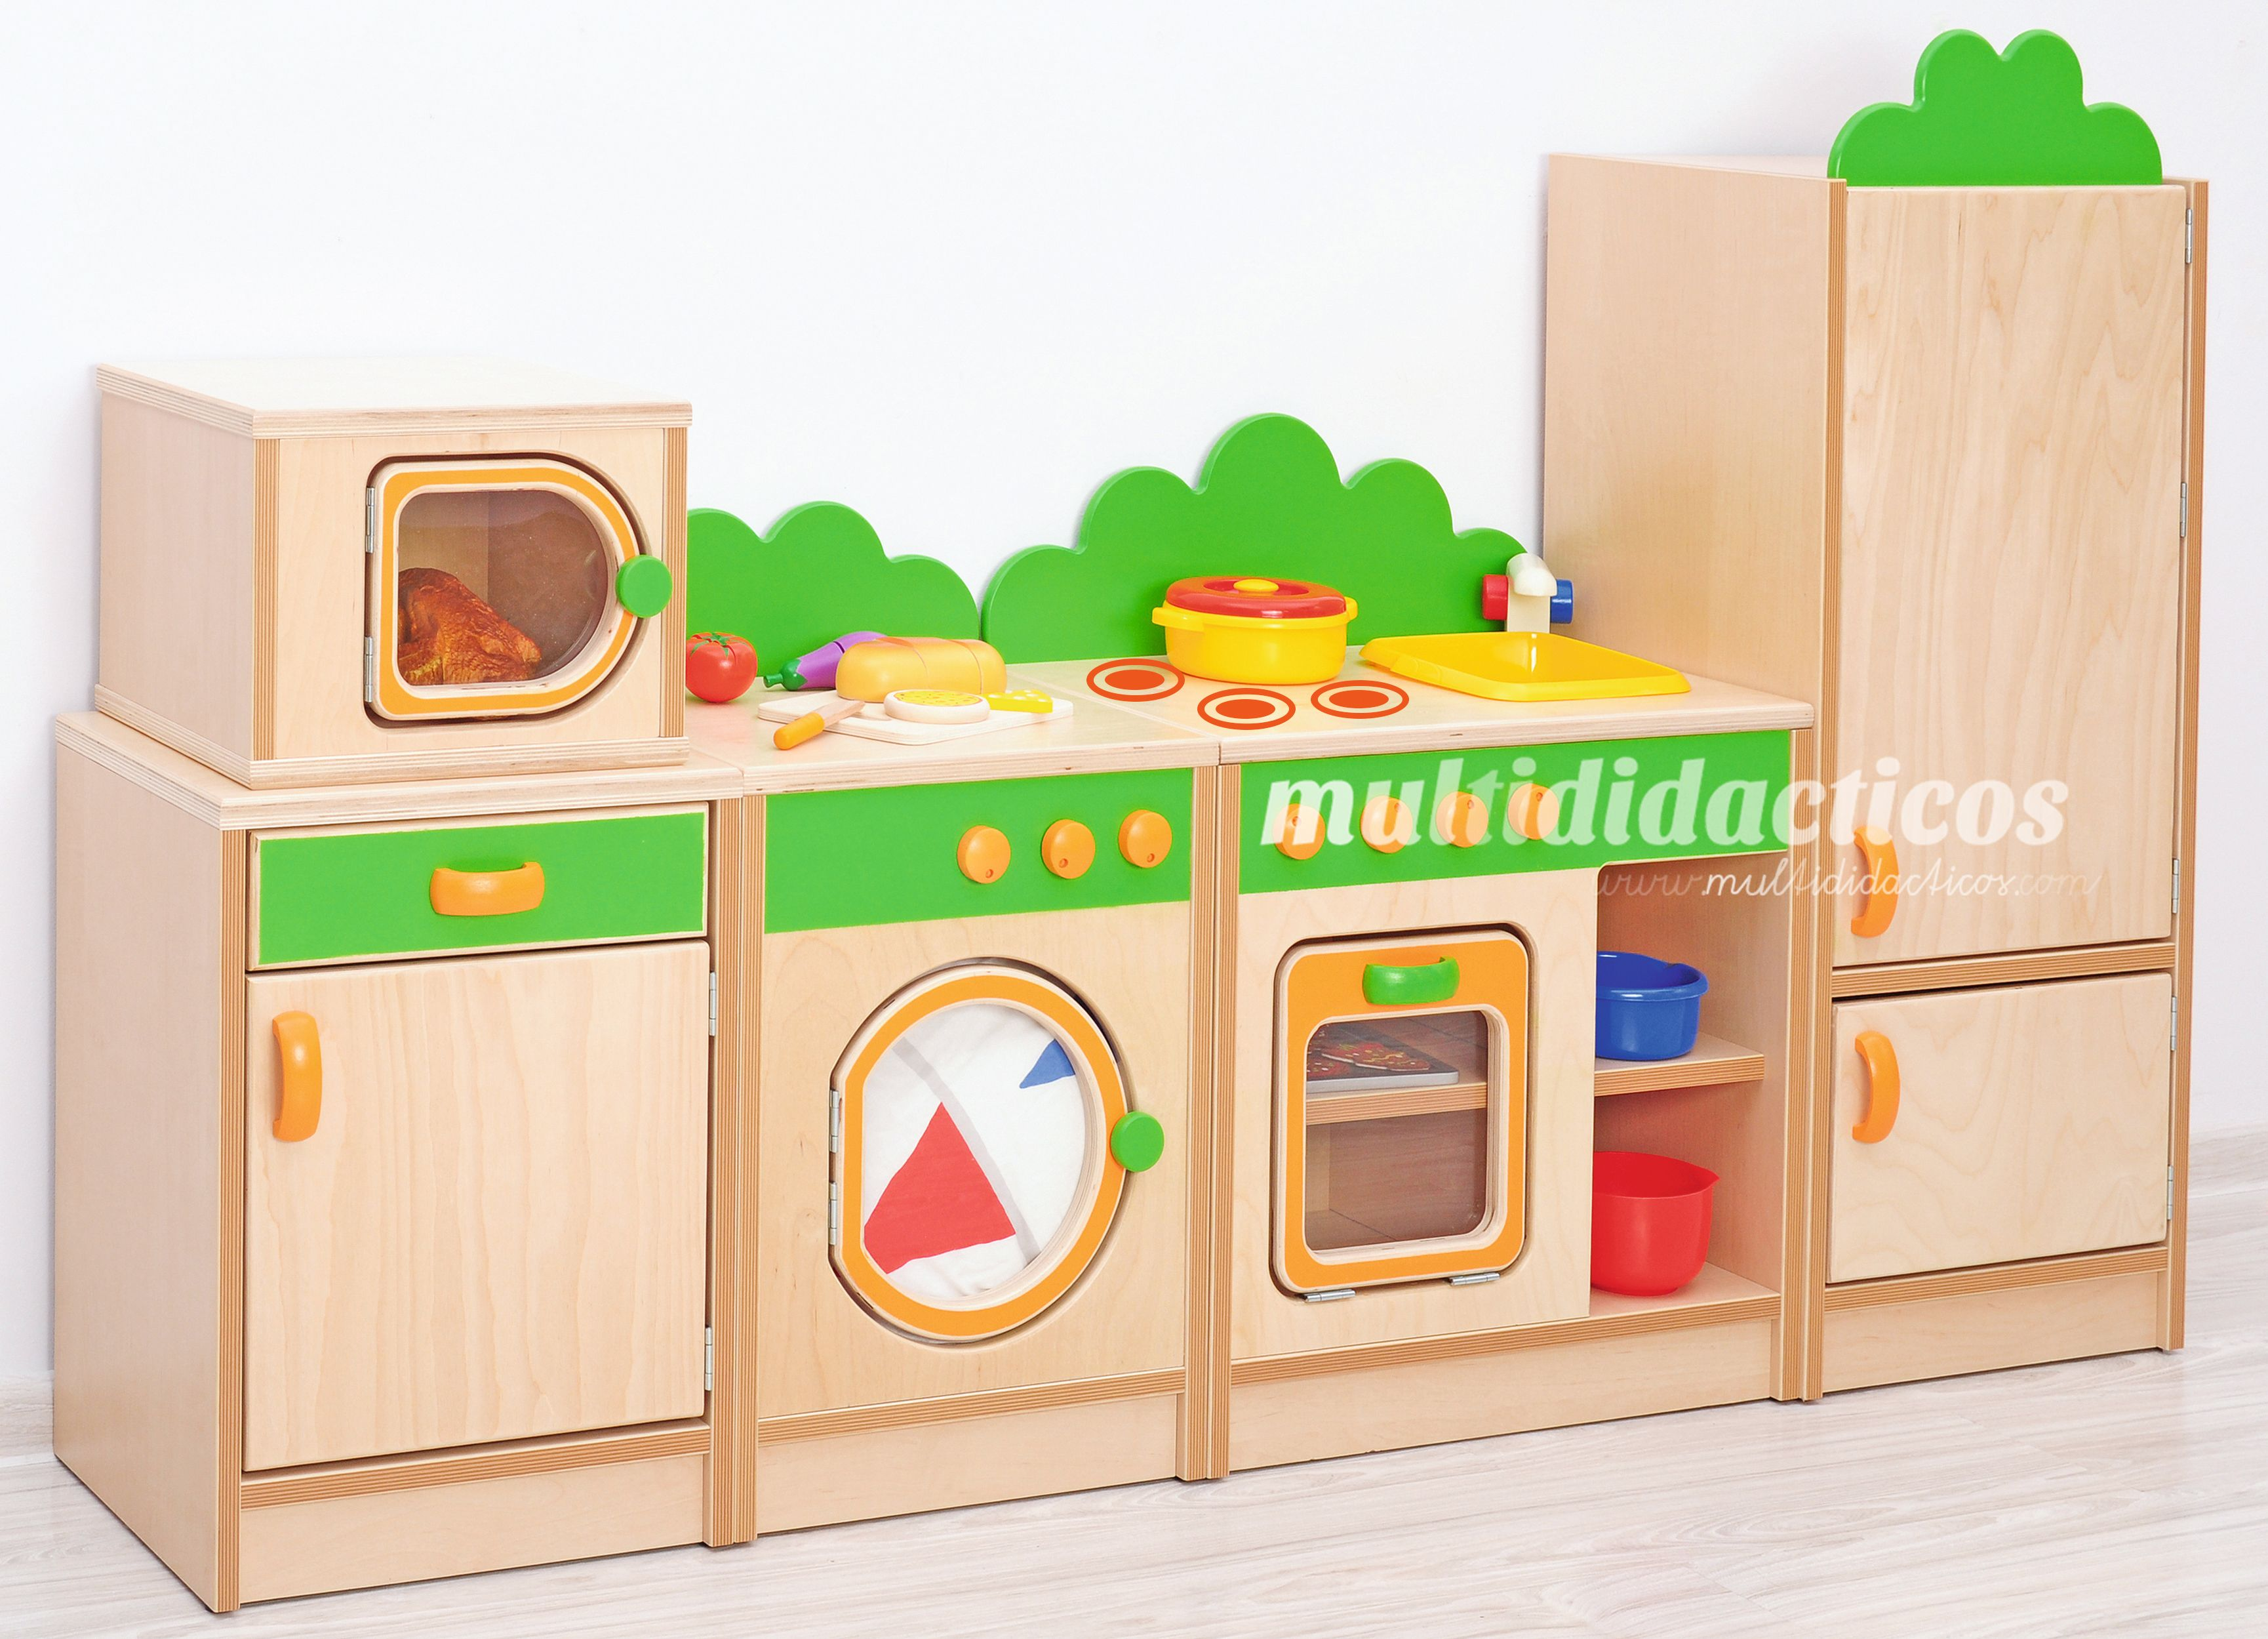 Pin by Grupo Multididacticos on Mobiliario infantil | Muebles ...